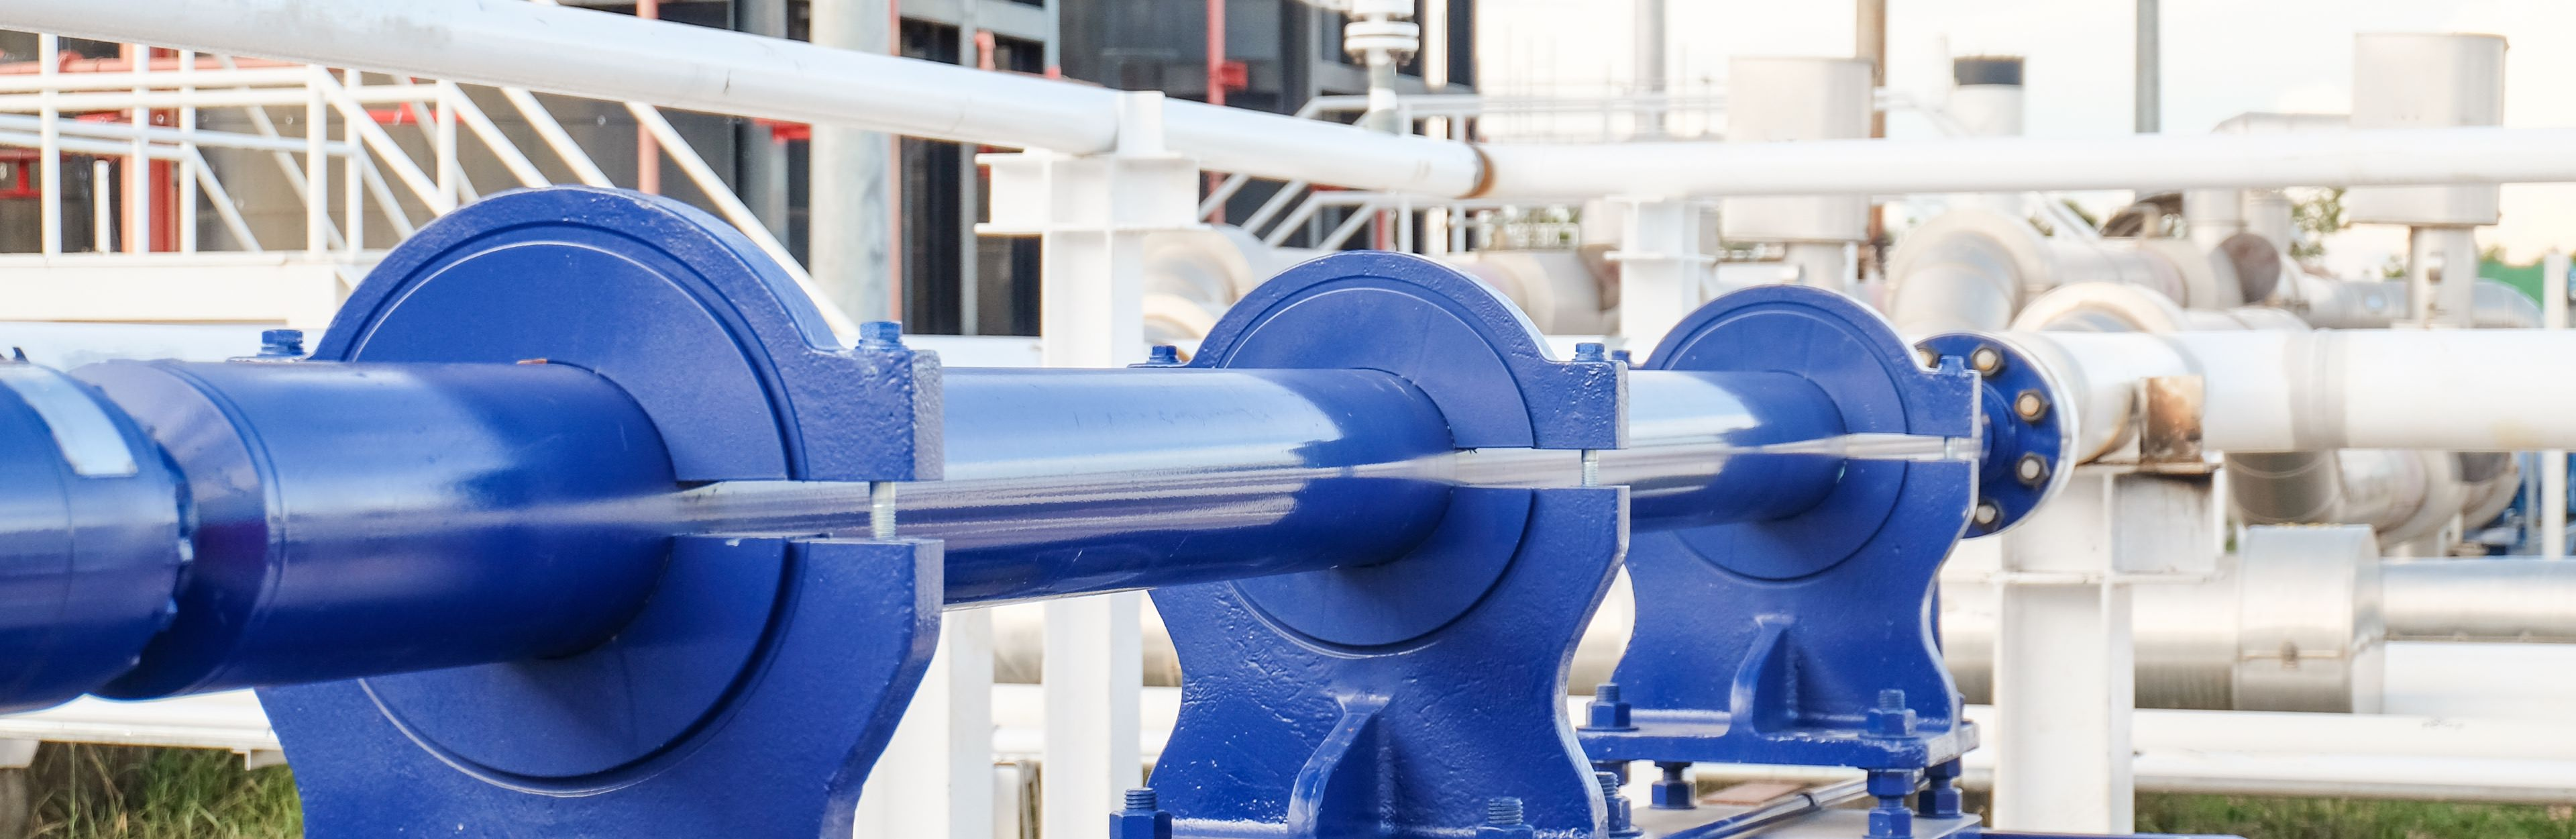 Predictive maintenance - Progressive Cavit Pumps